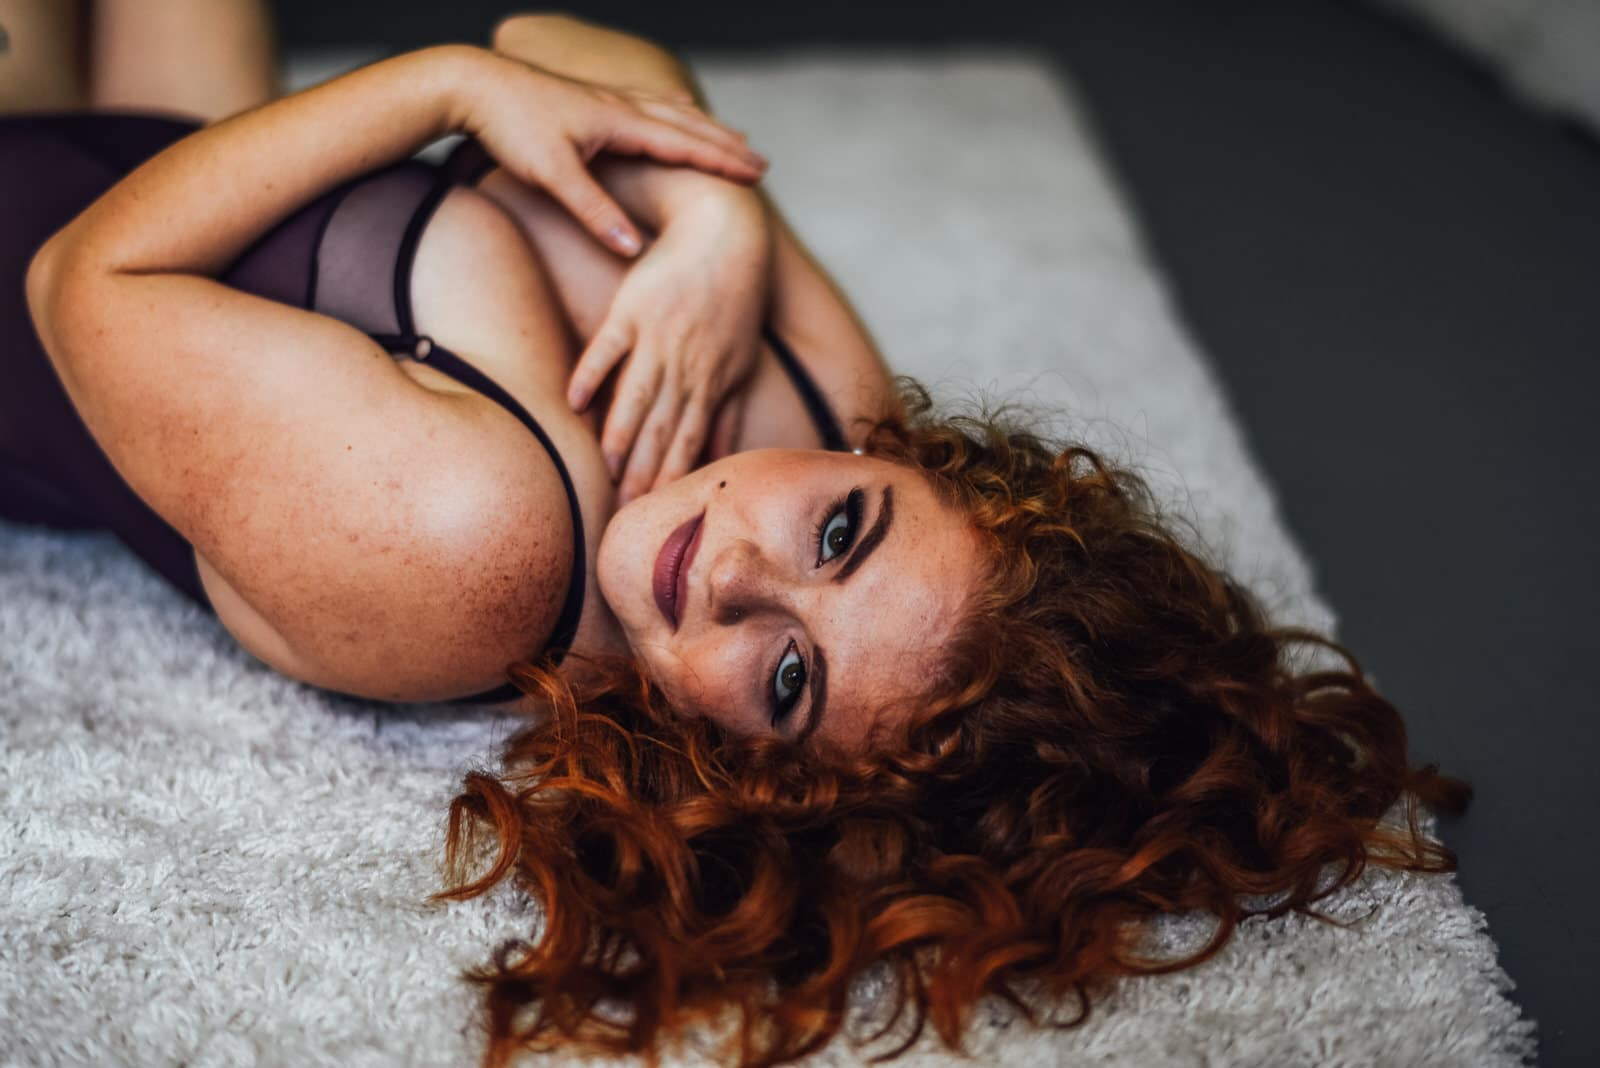 Boudoir Photography Most Frequently Asked Questions